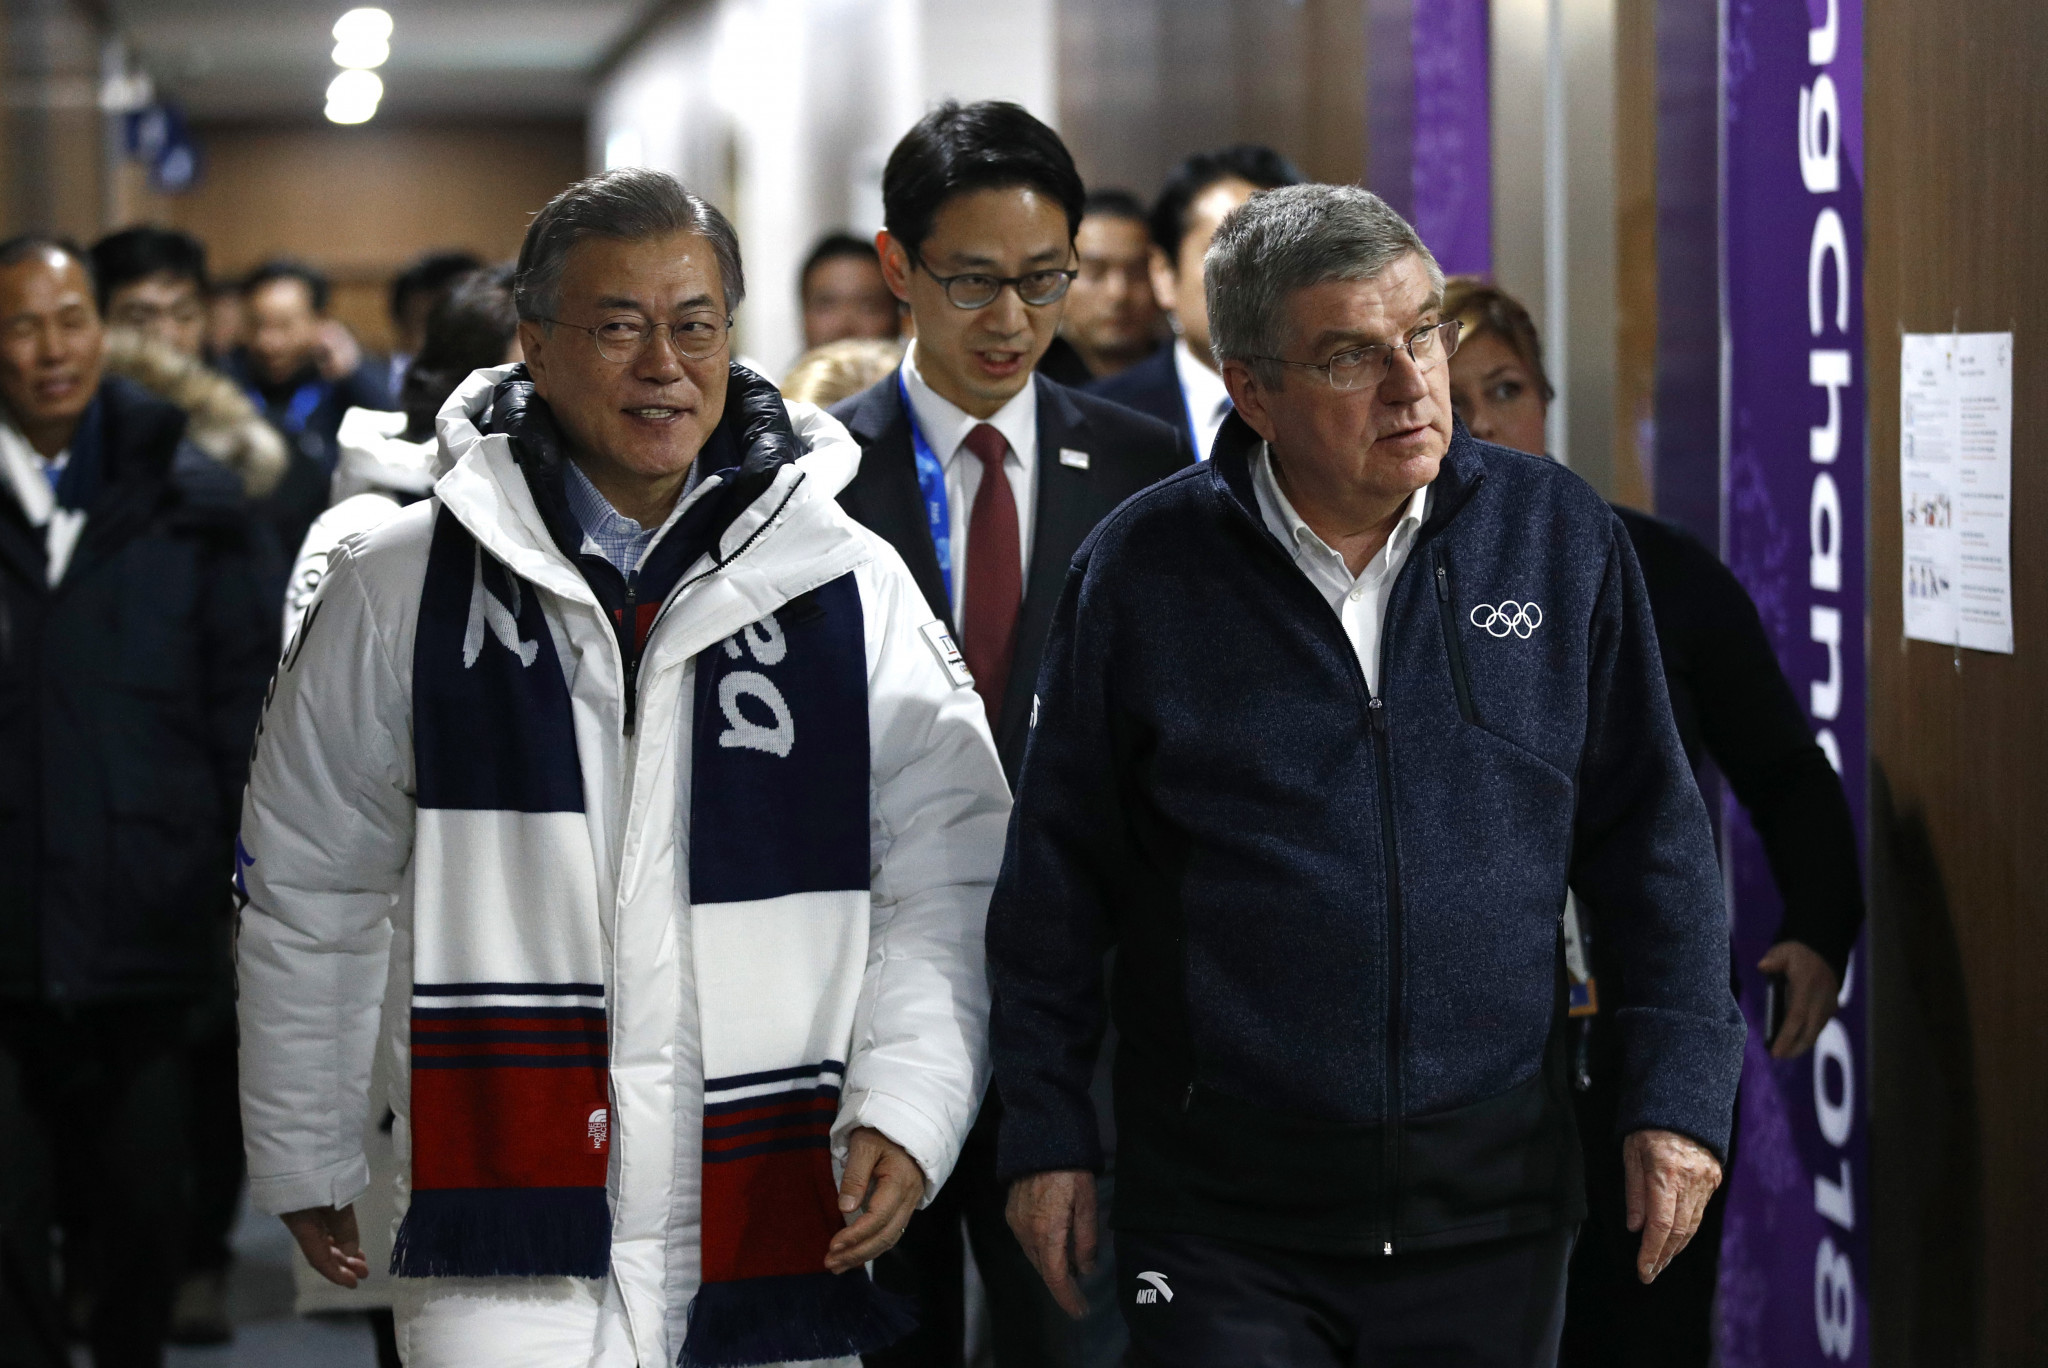 Moon Jae-in joined Thomas Bach in attending the Pyeongchang 2018 Closing Ceremony ©Getty Images